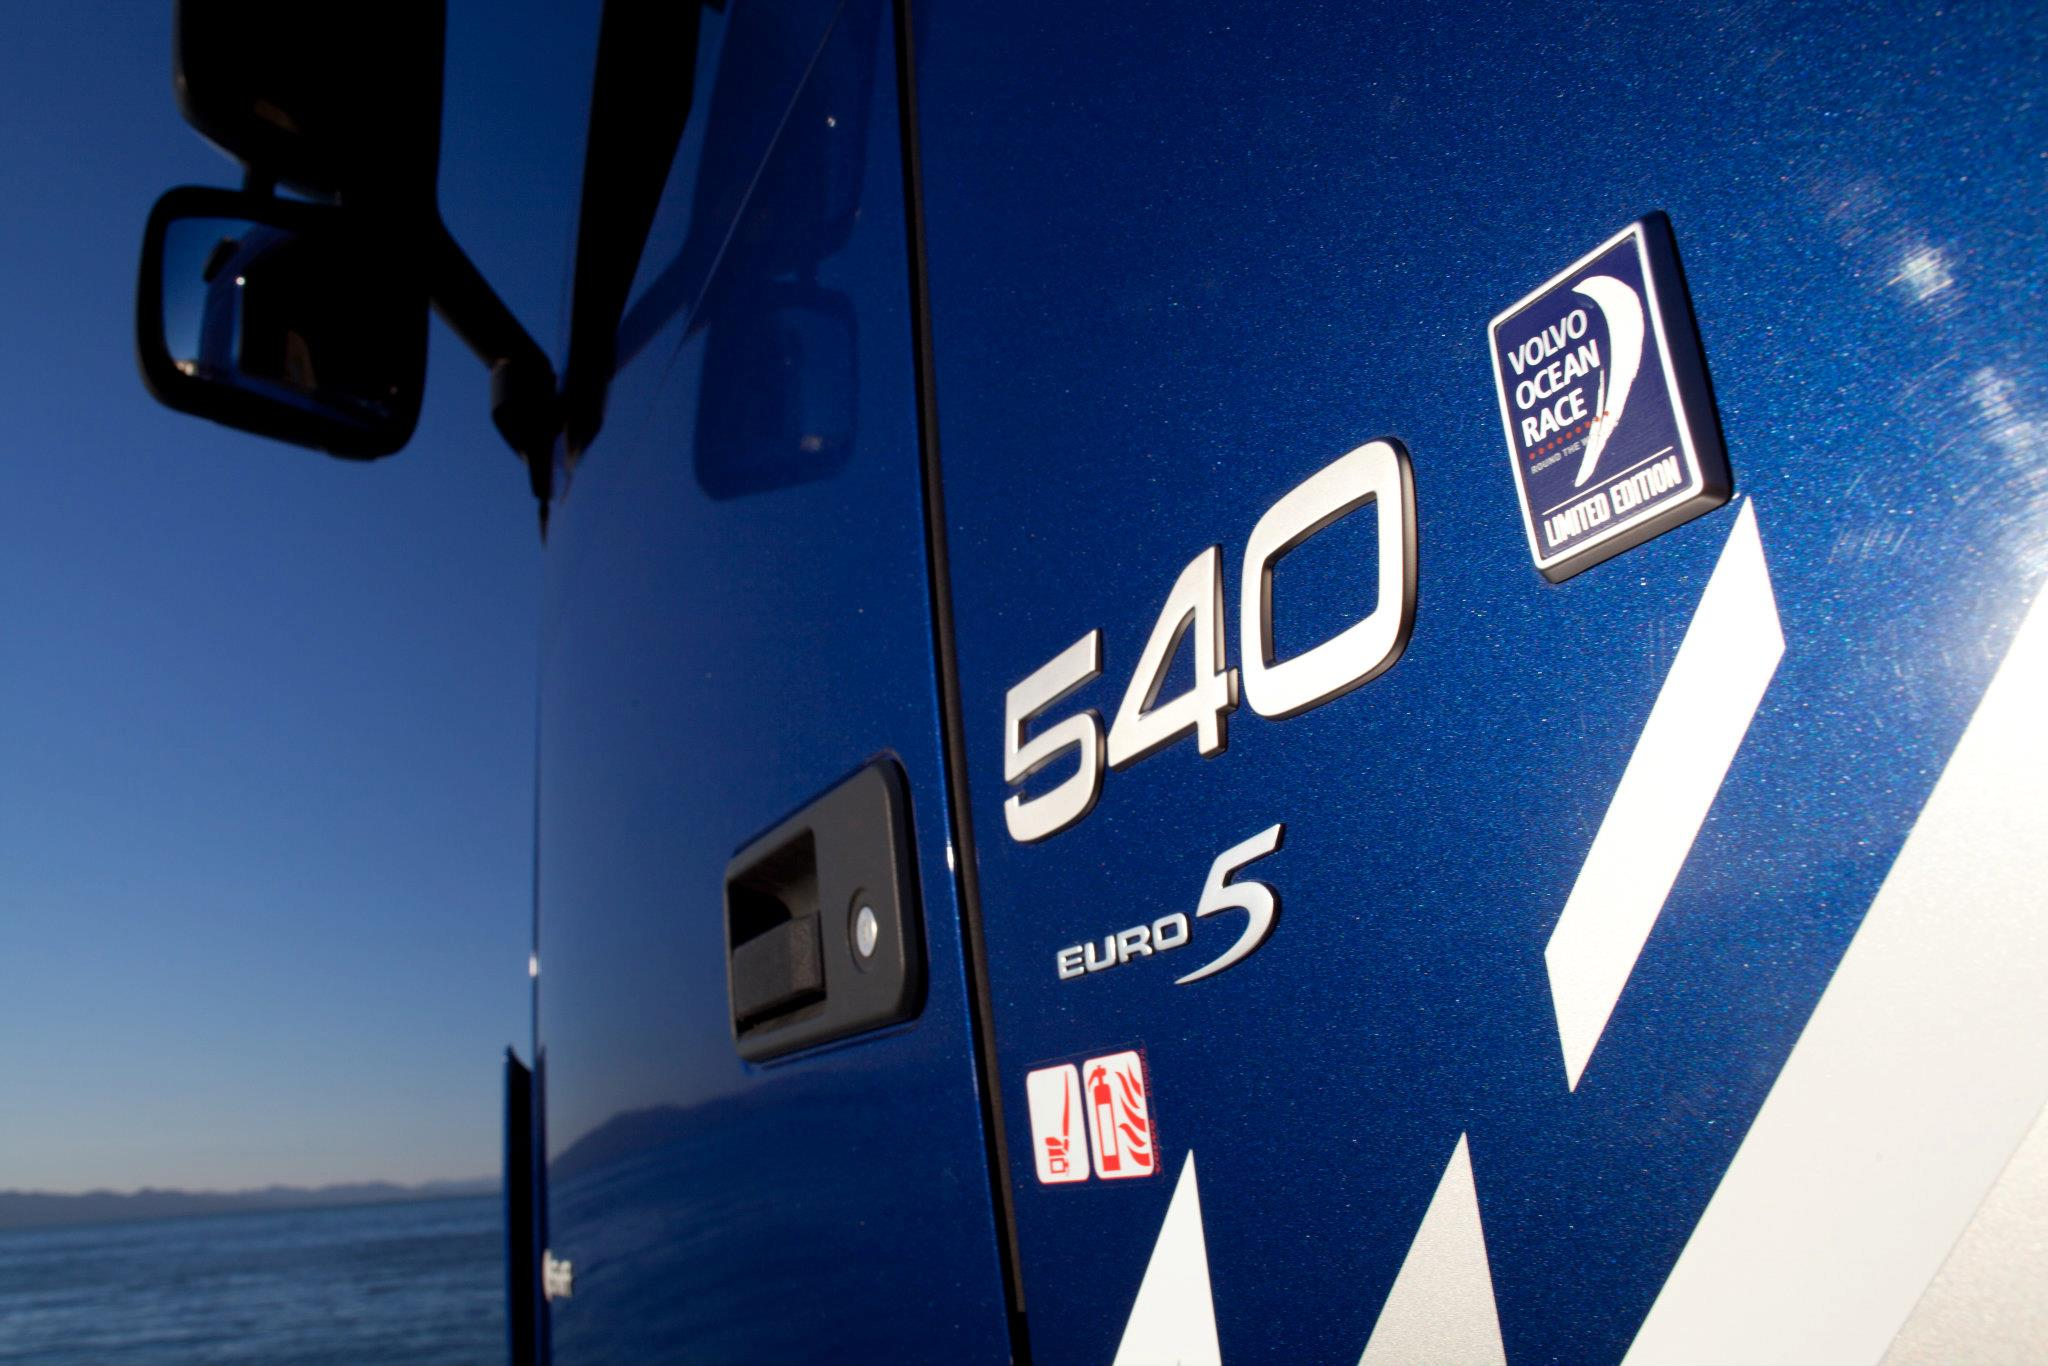 Volvo FH Euro 5 - Ocean Race Limited Edition - Brasil 2012 (7)